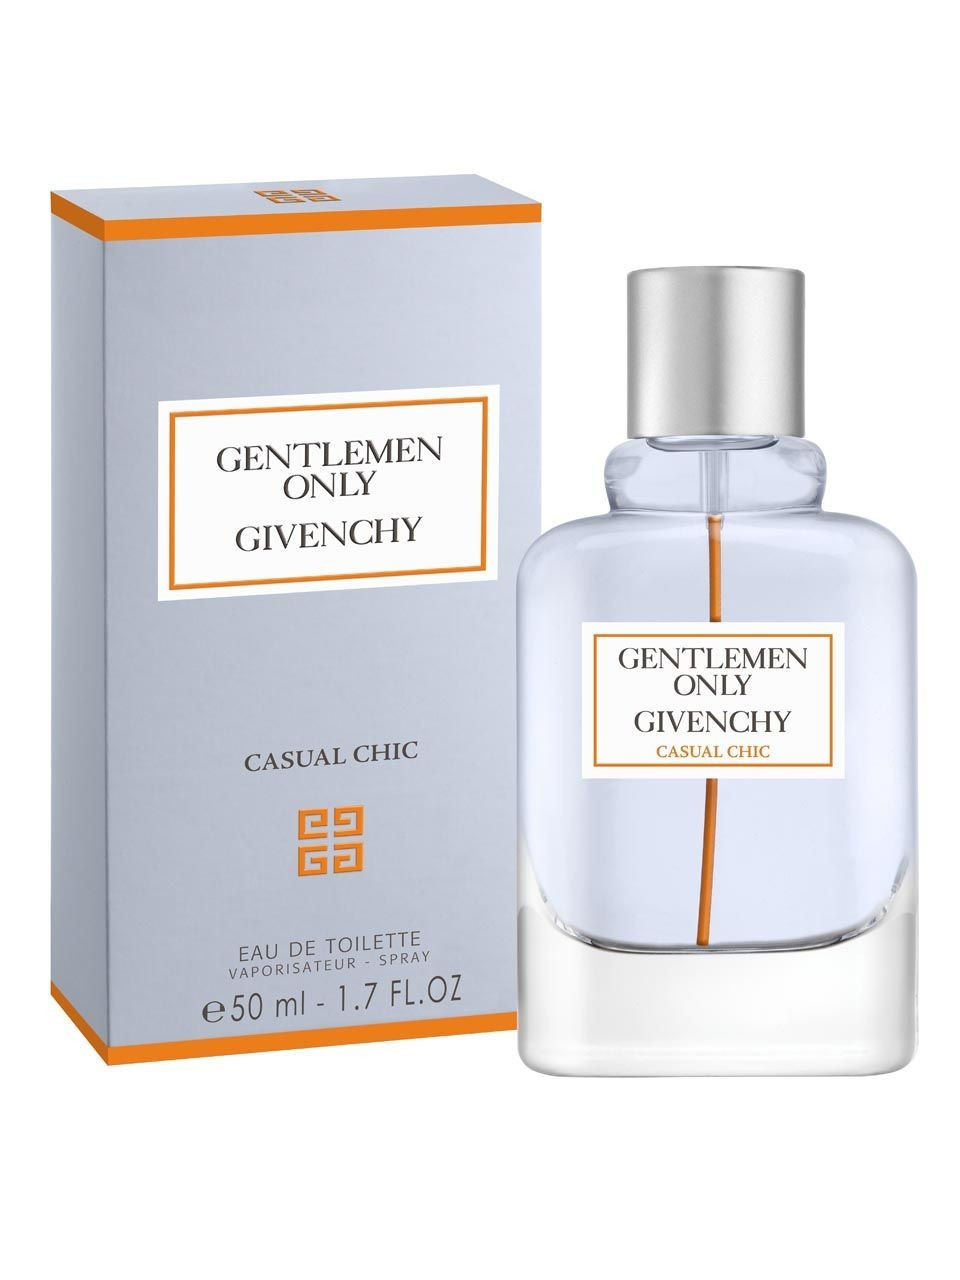 Givenchy Gentlemen Only Casual Chic 100ml Edt цена 1 30697 грн